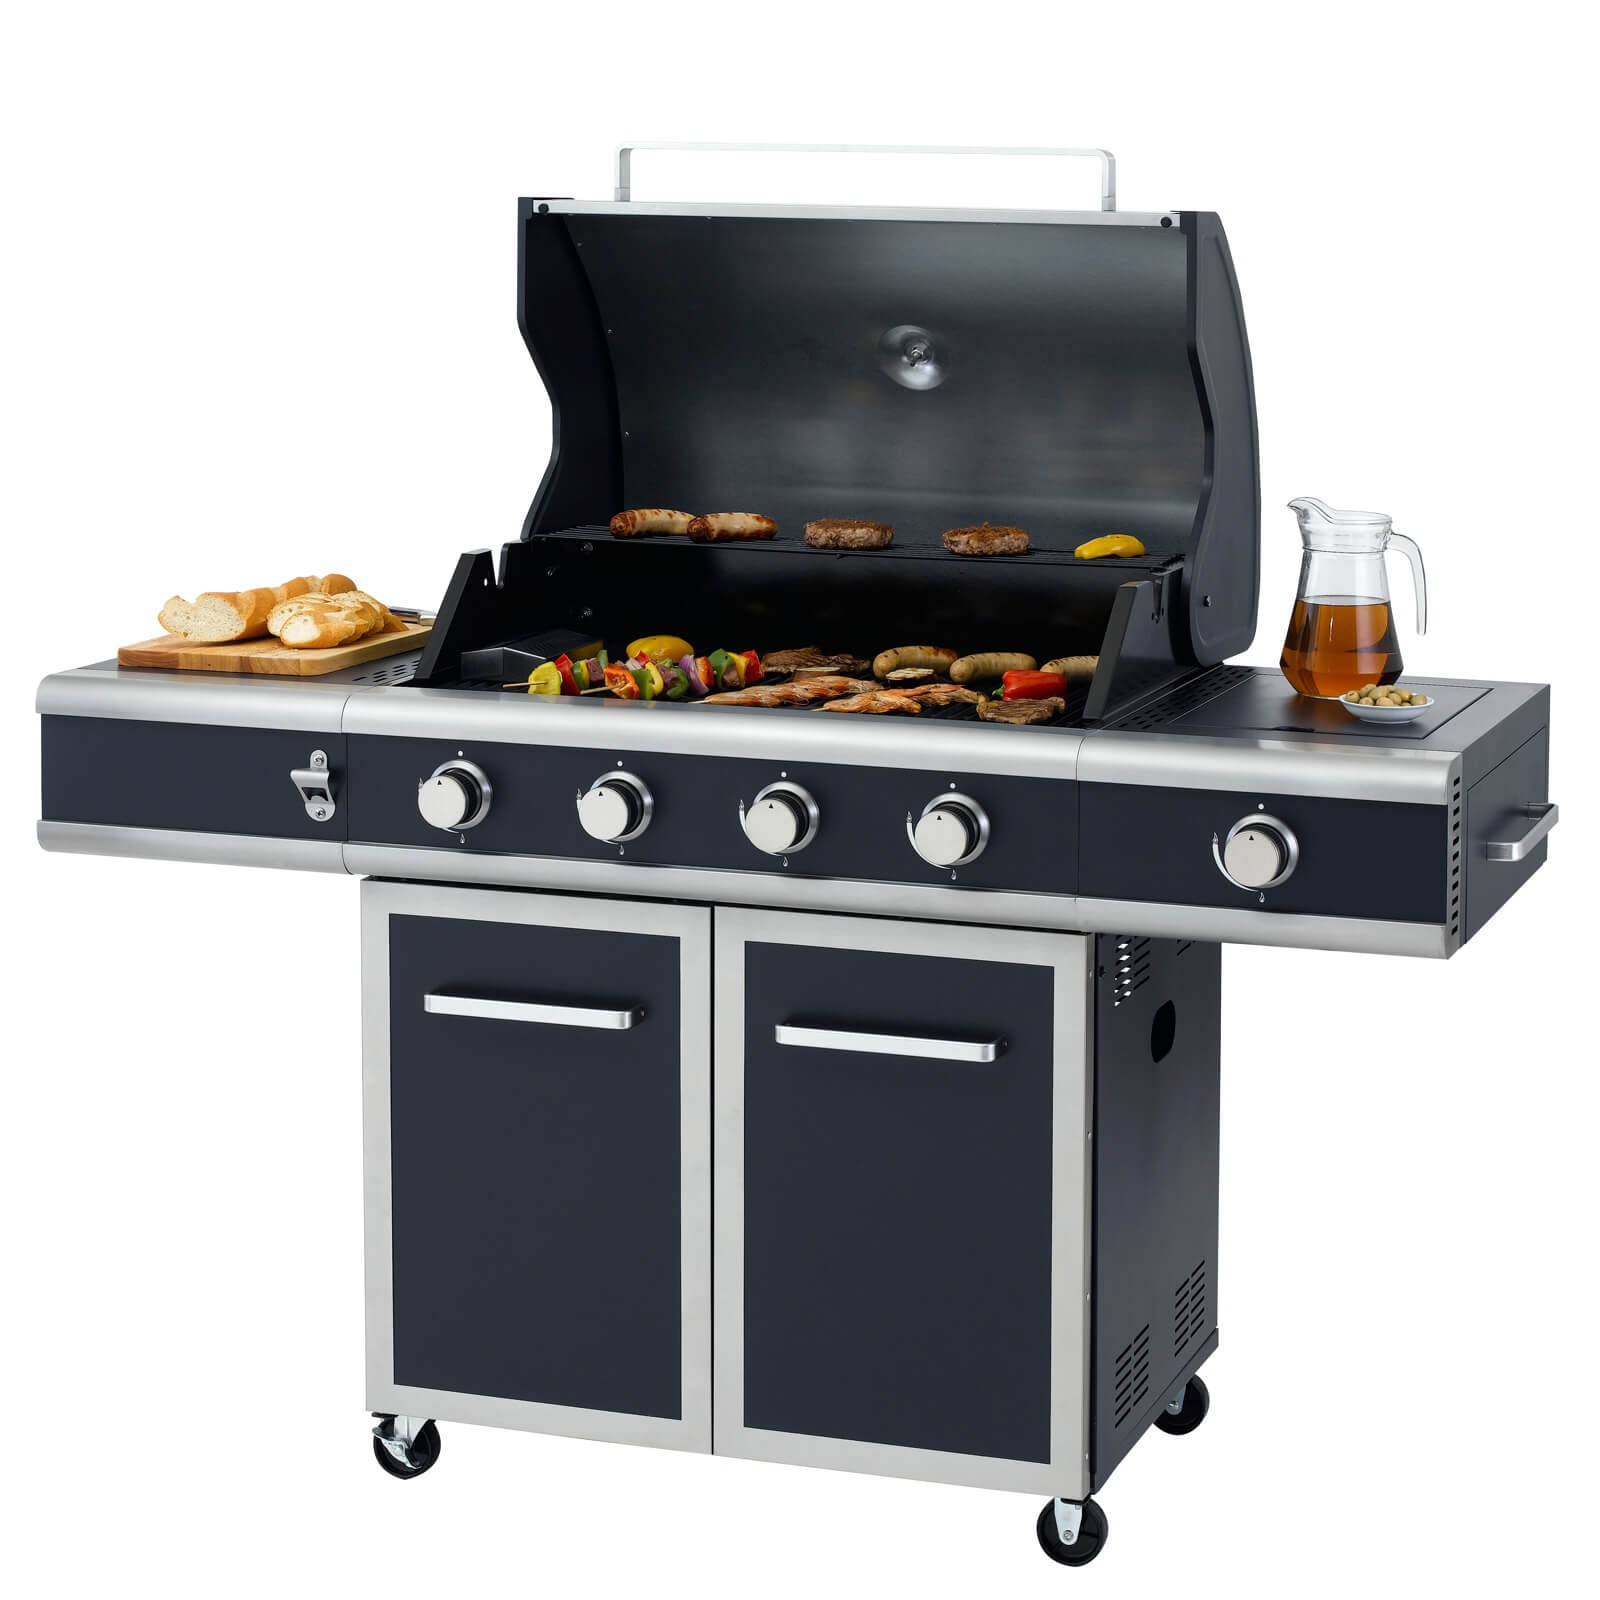 Tepro Gasgrill BBQ Grillwagen 4 Edelstahl Brenner Gas Barbecue Grill Vancouver 3175